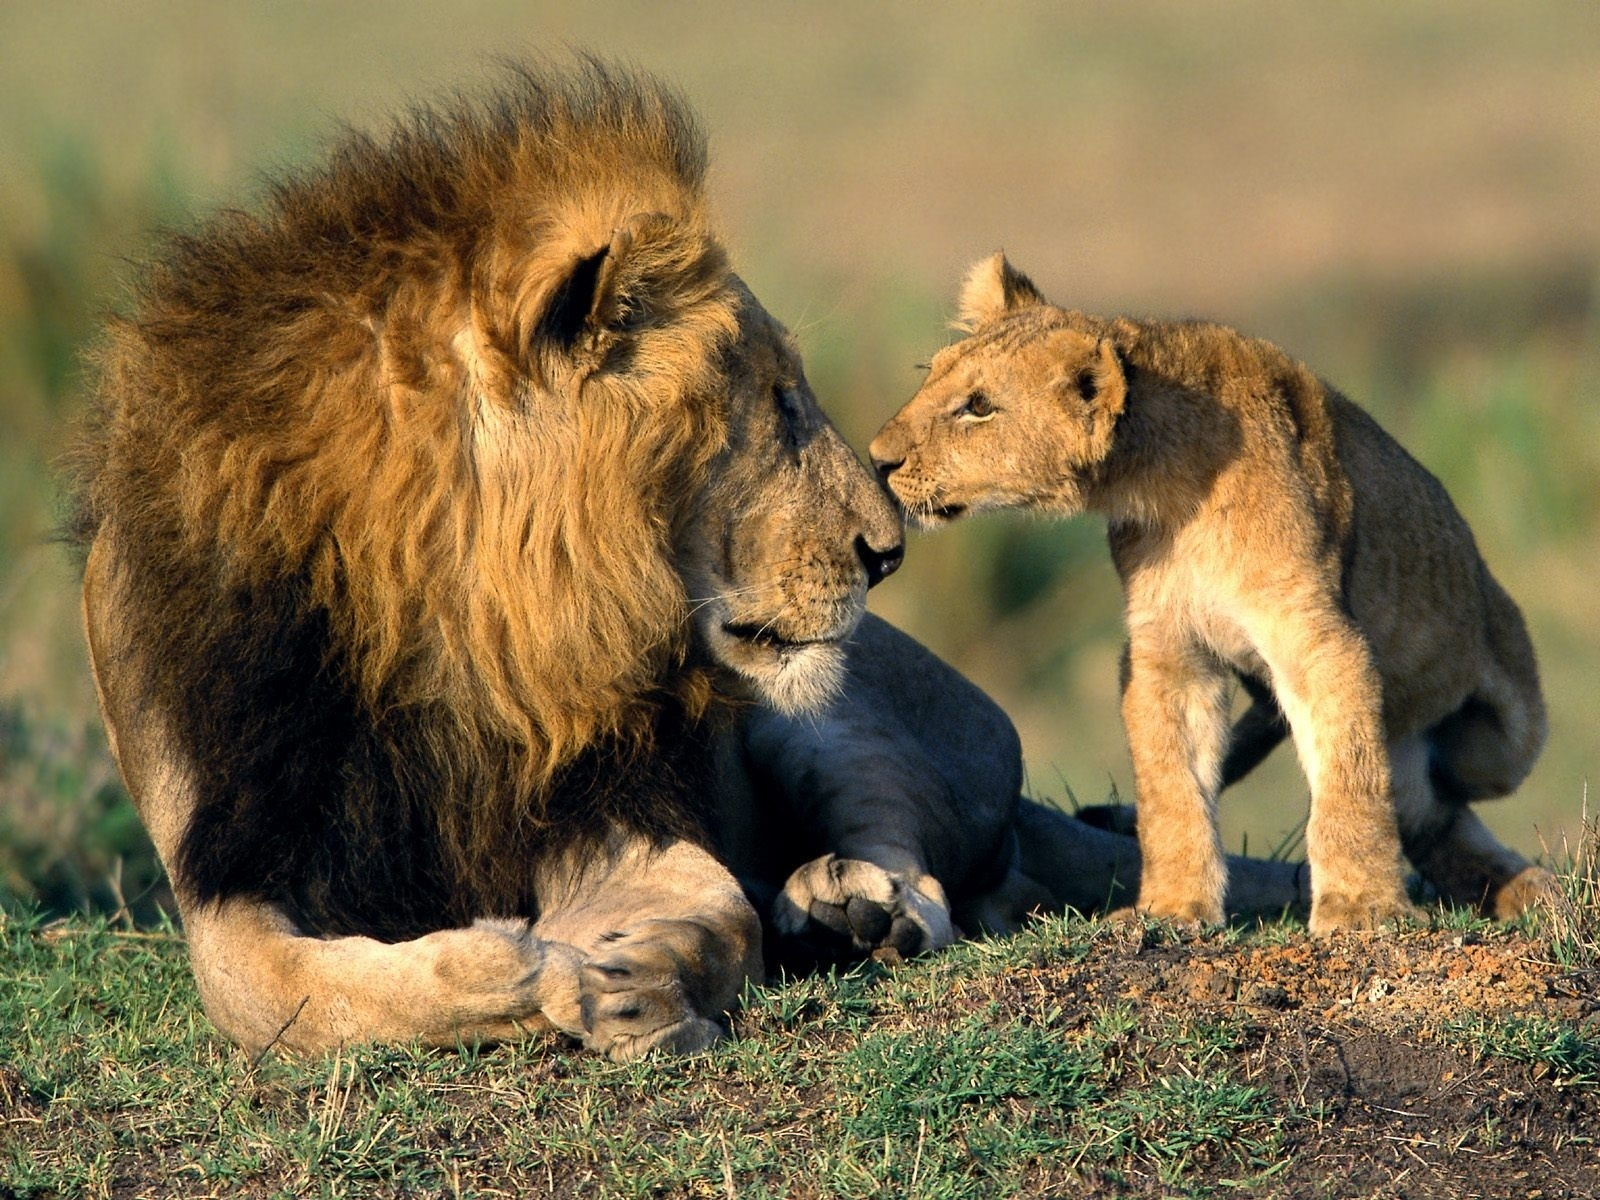 Wild animals father and son